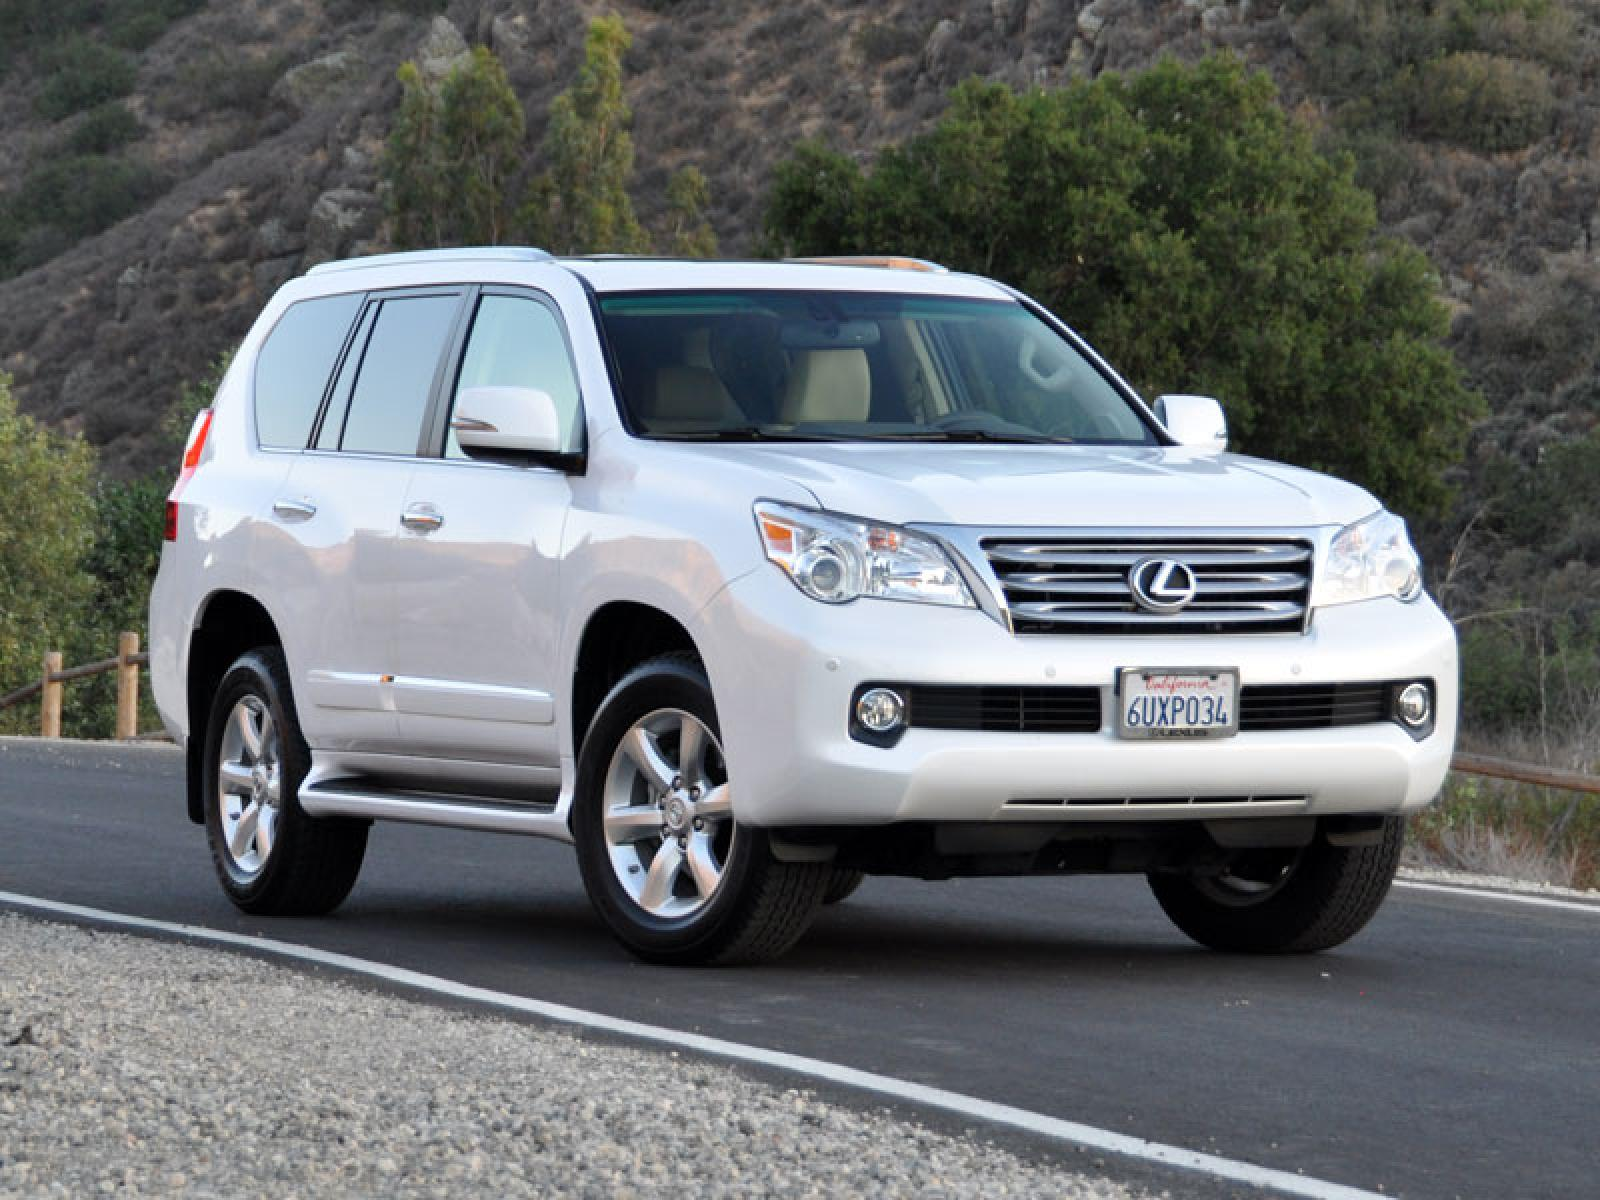 2013 lexus gx 460 information and photos zombiedrive. Black Bedroom Furniture Sets. Home Design Ideas